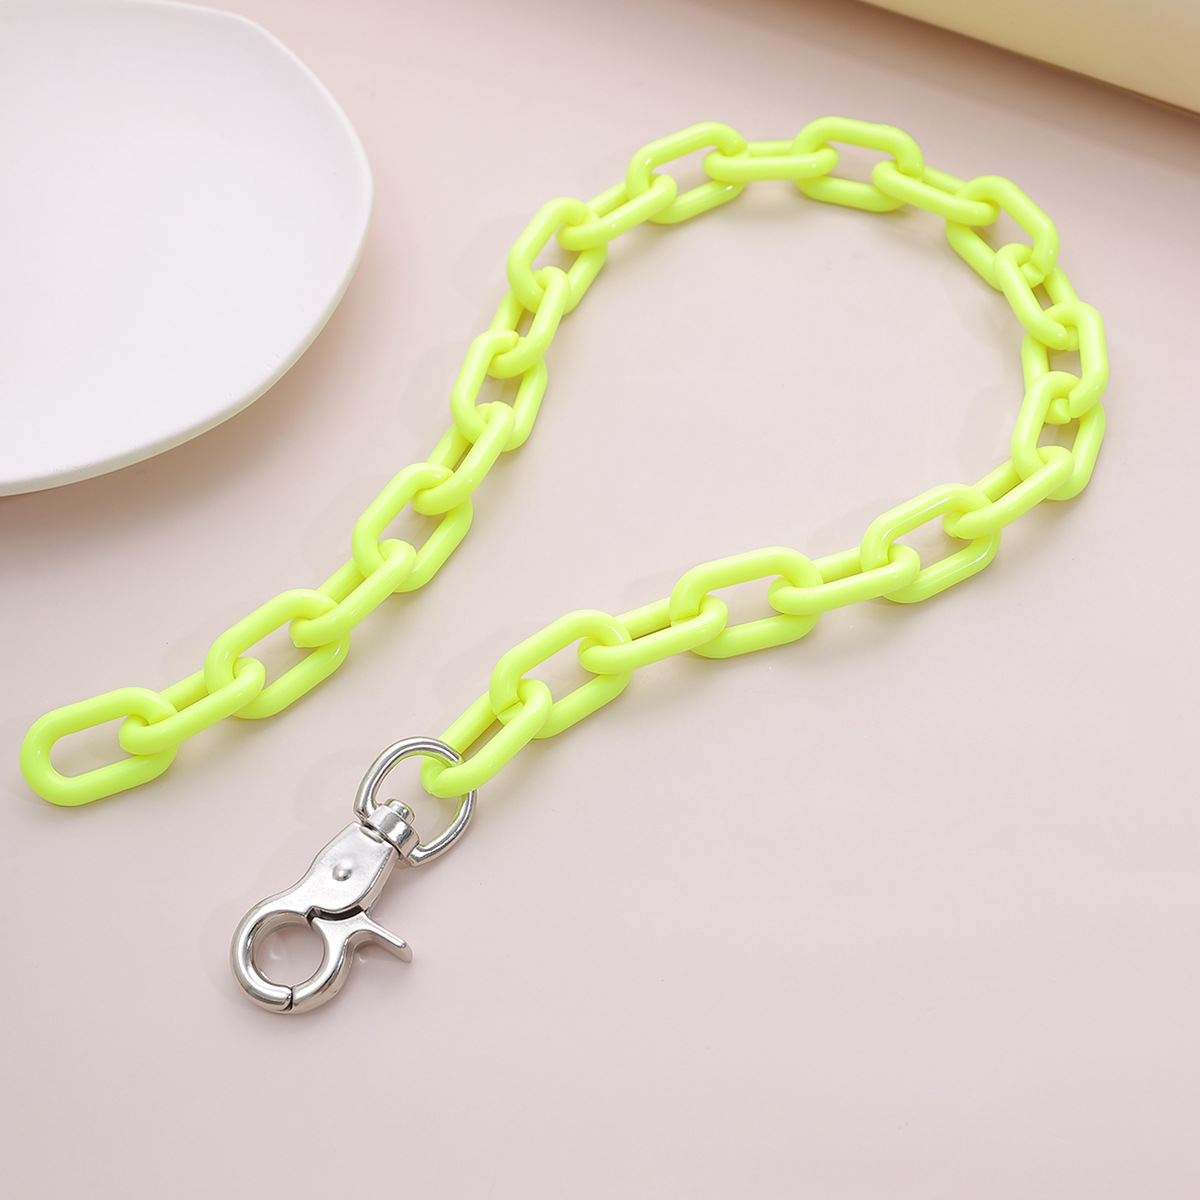 jewelry tassel adjustable item decoration hiphop tide key chain exaggerated chain necklace wholesale nihaojewelry NHXR228283